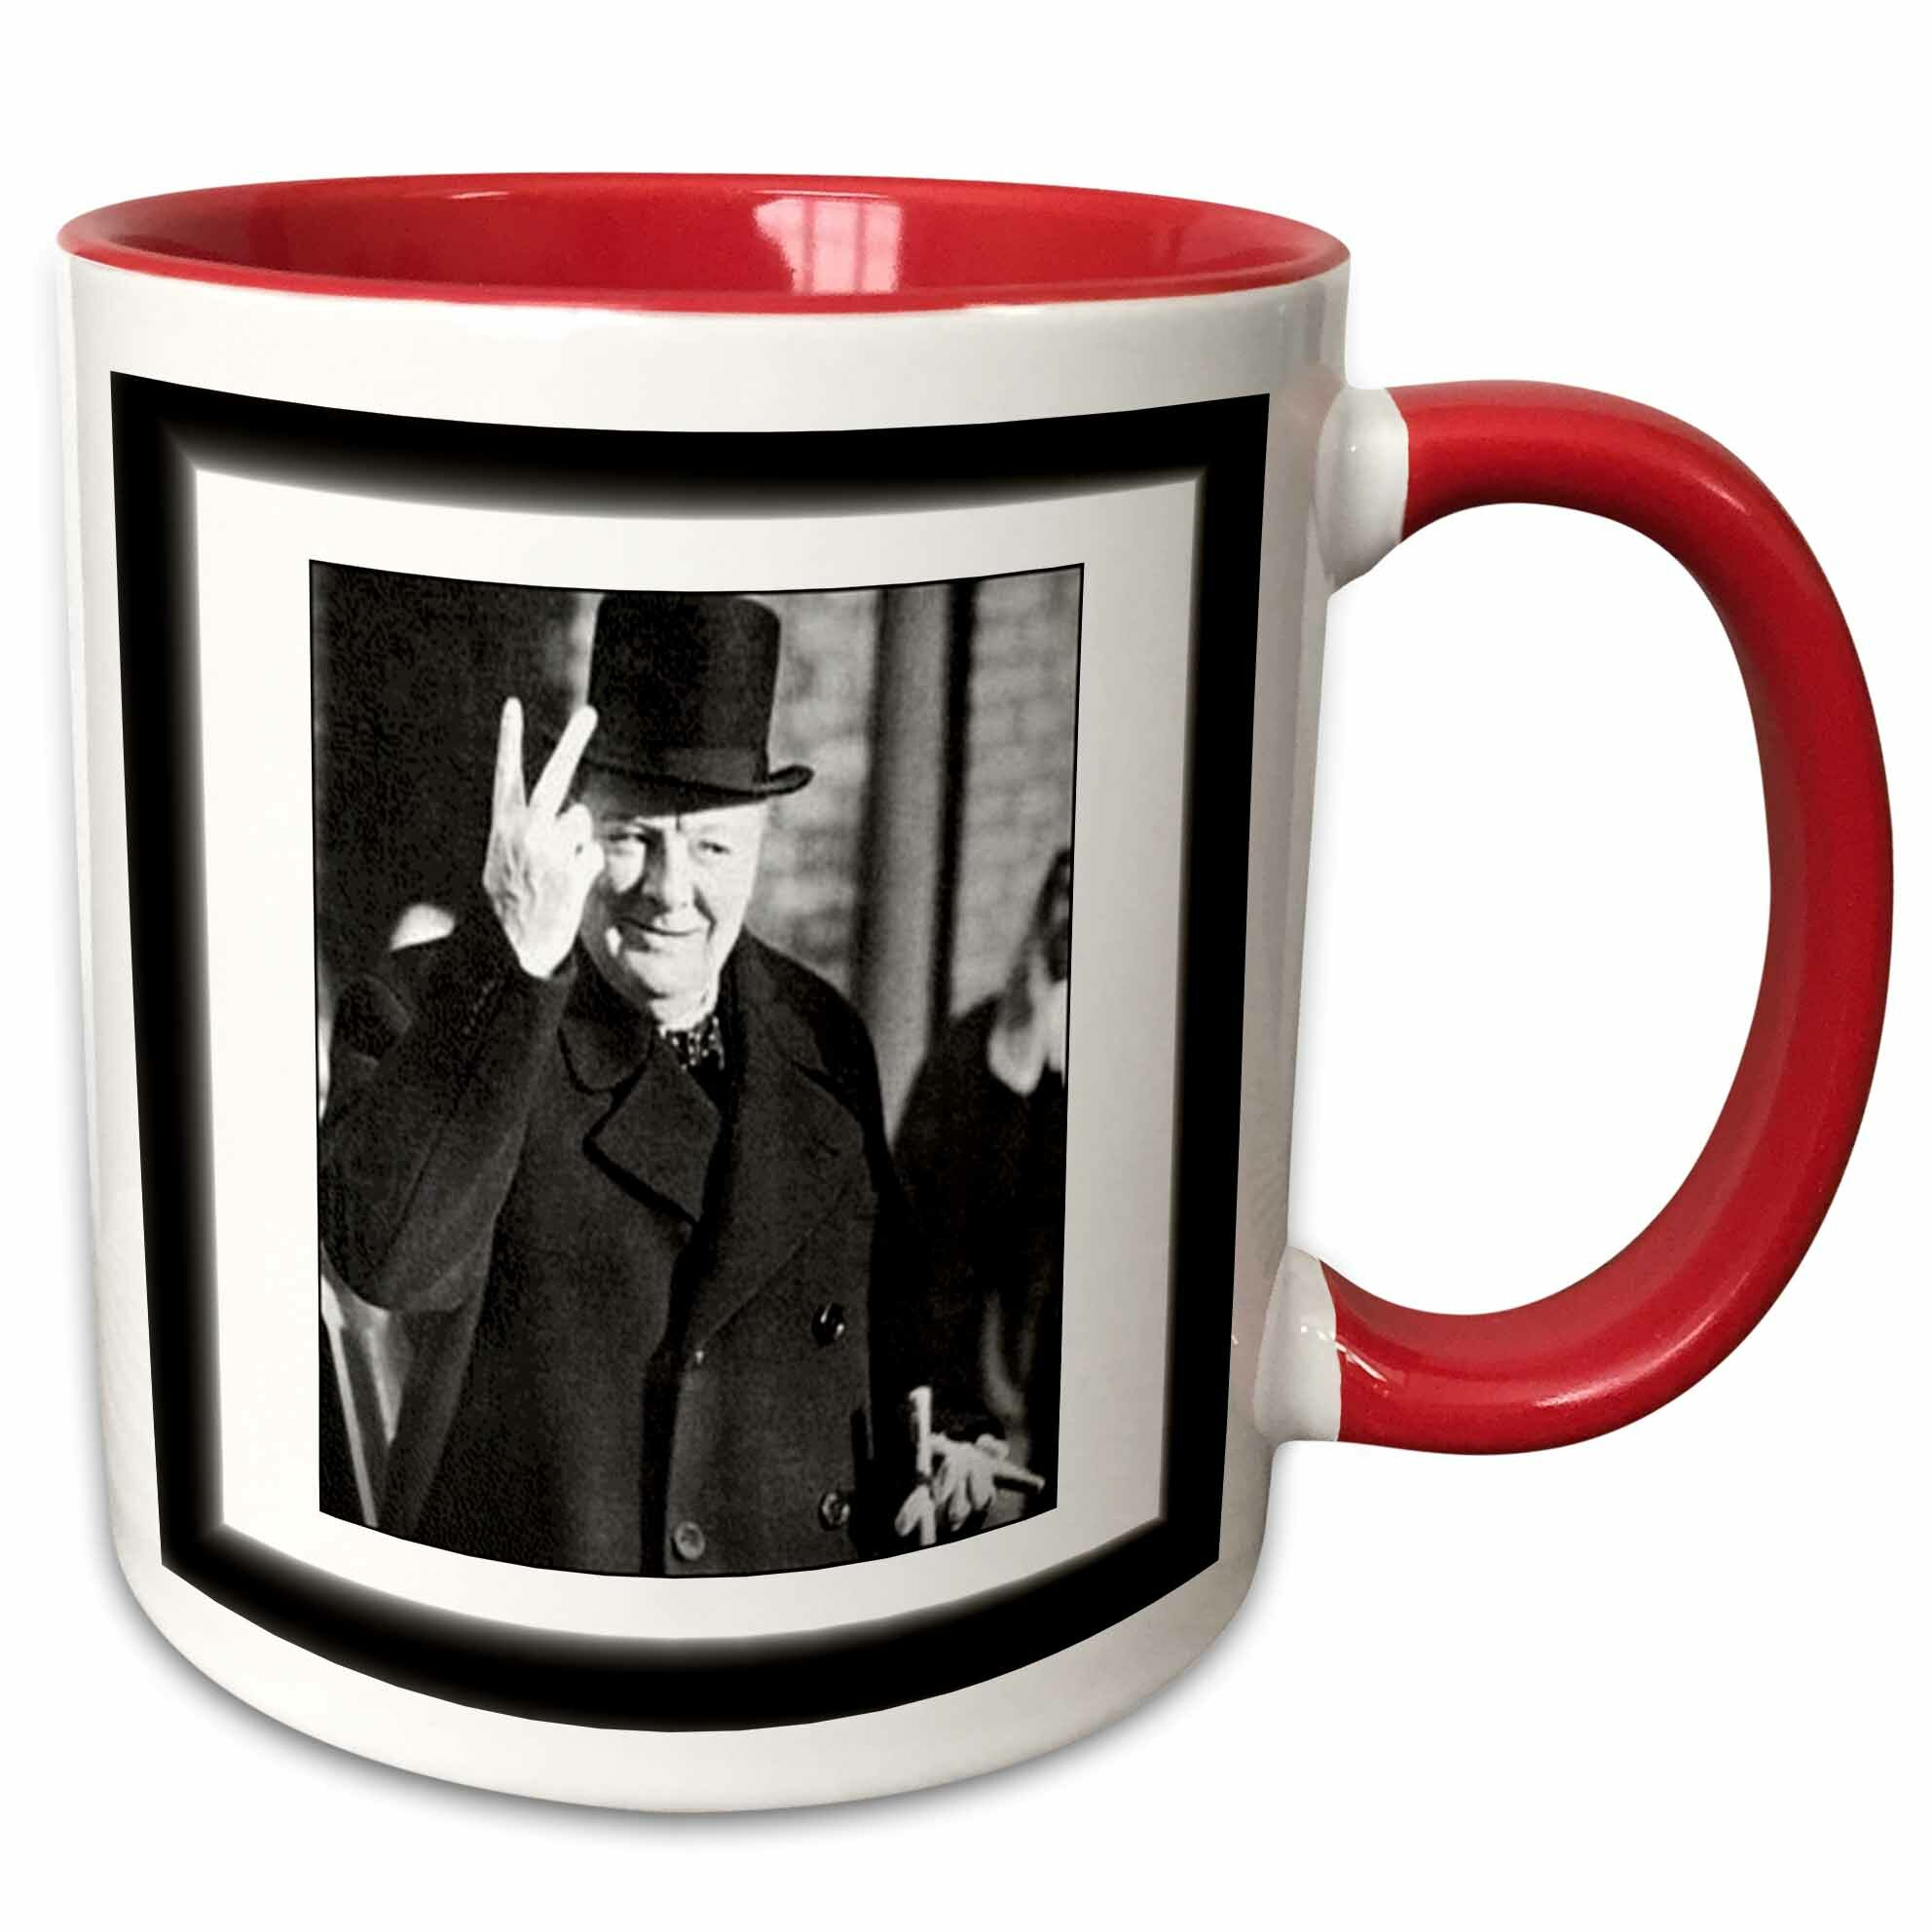 About Mug Symple Photo Erbe Winston Stuff Churchill Coffee Details Of 35R4LqAj